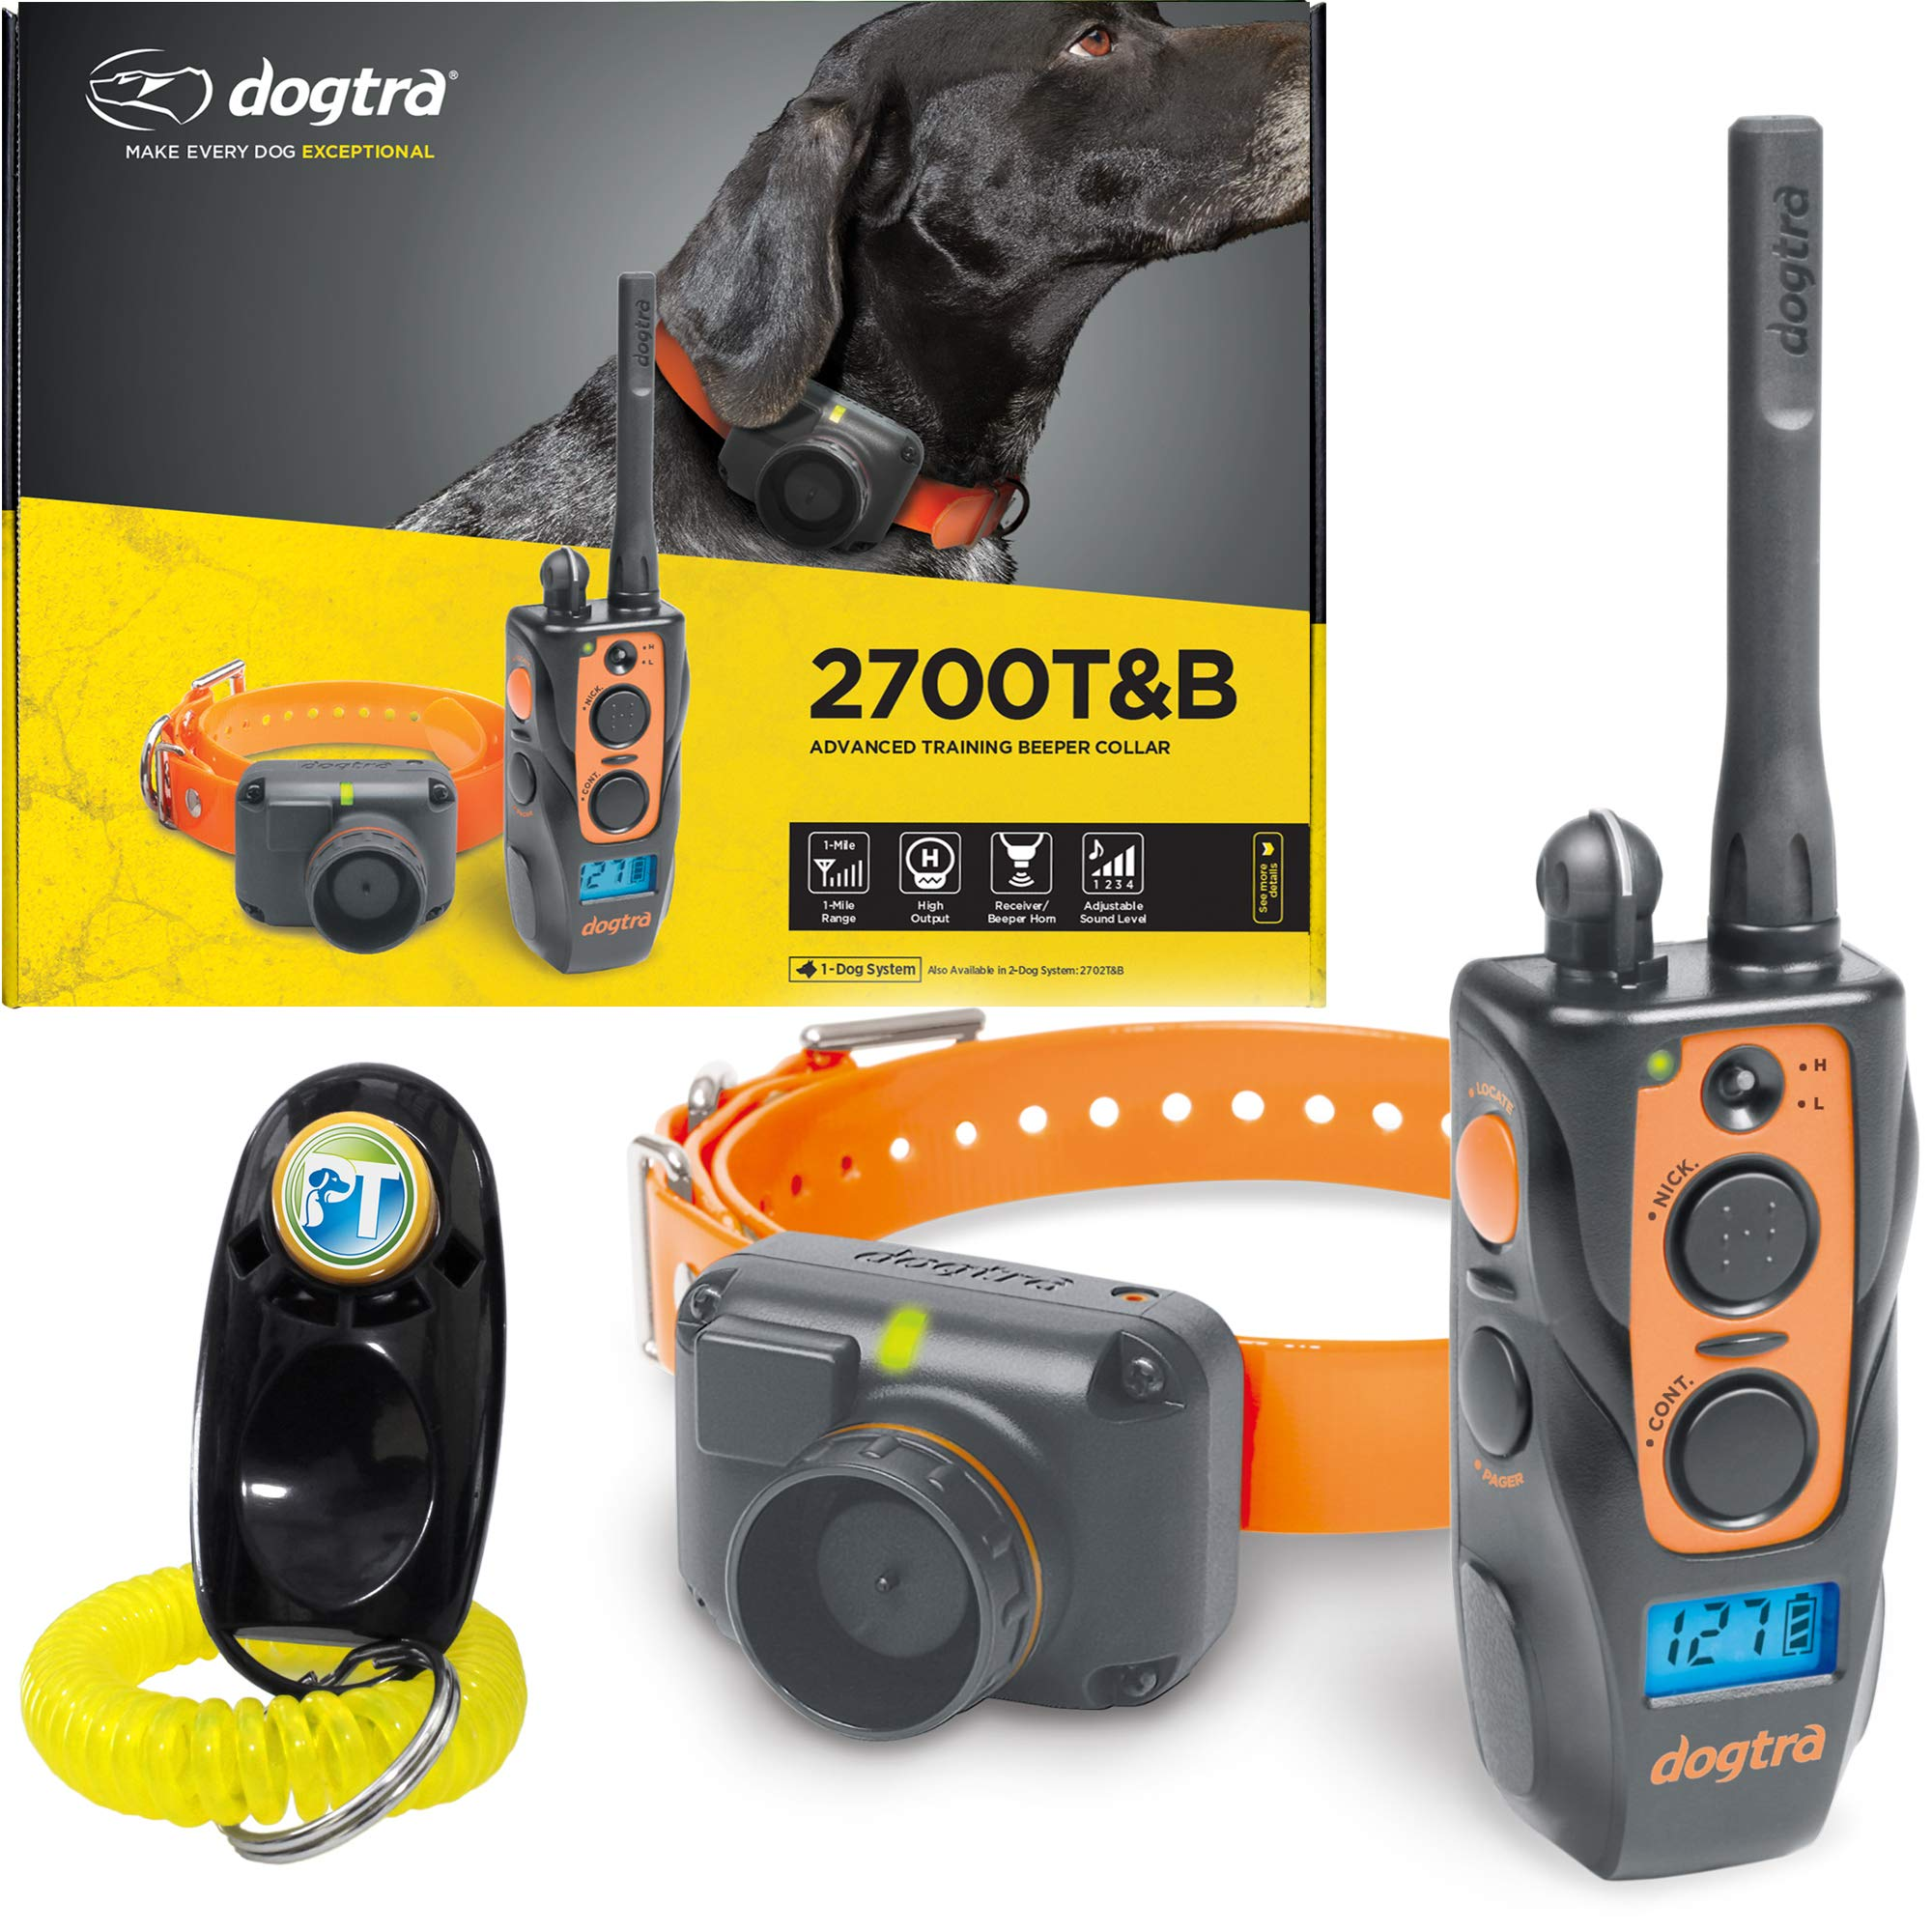 Dogtra 2700T&B Remote Training and Beeper Collar - 1 Mile Range, Fully Waterproof, Rechargeable, Shock, Vibration - Includes PetsTEK Dog Training Clicker by Dogtra